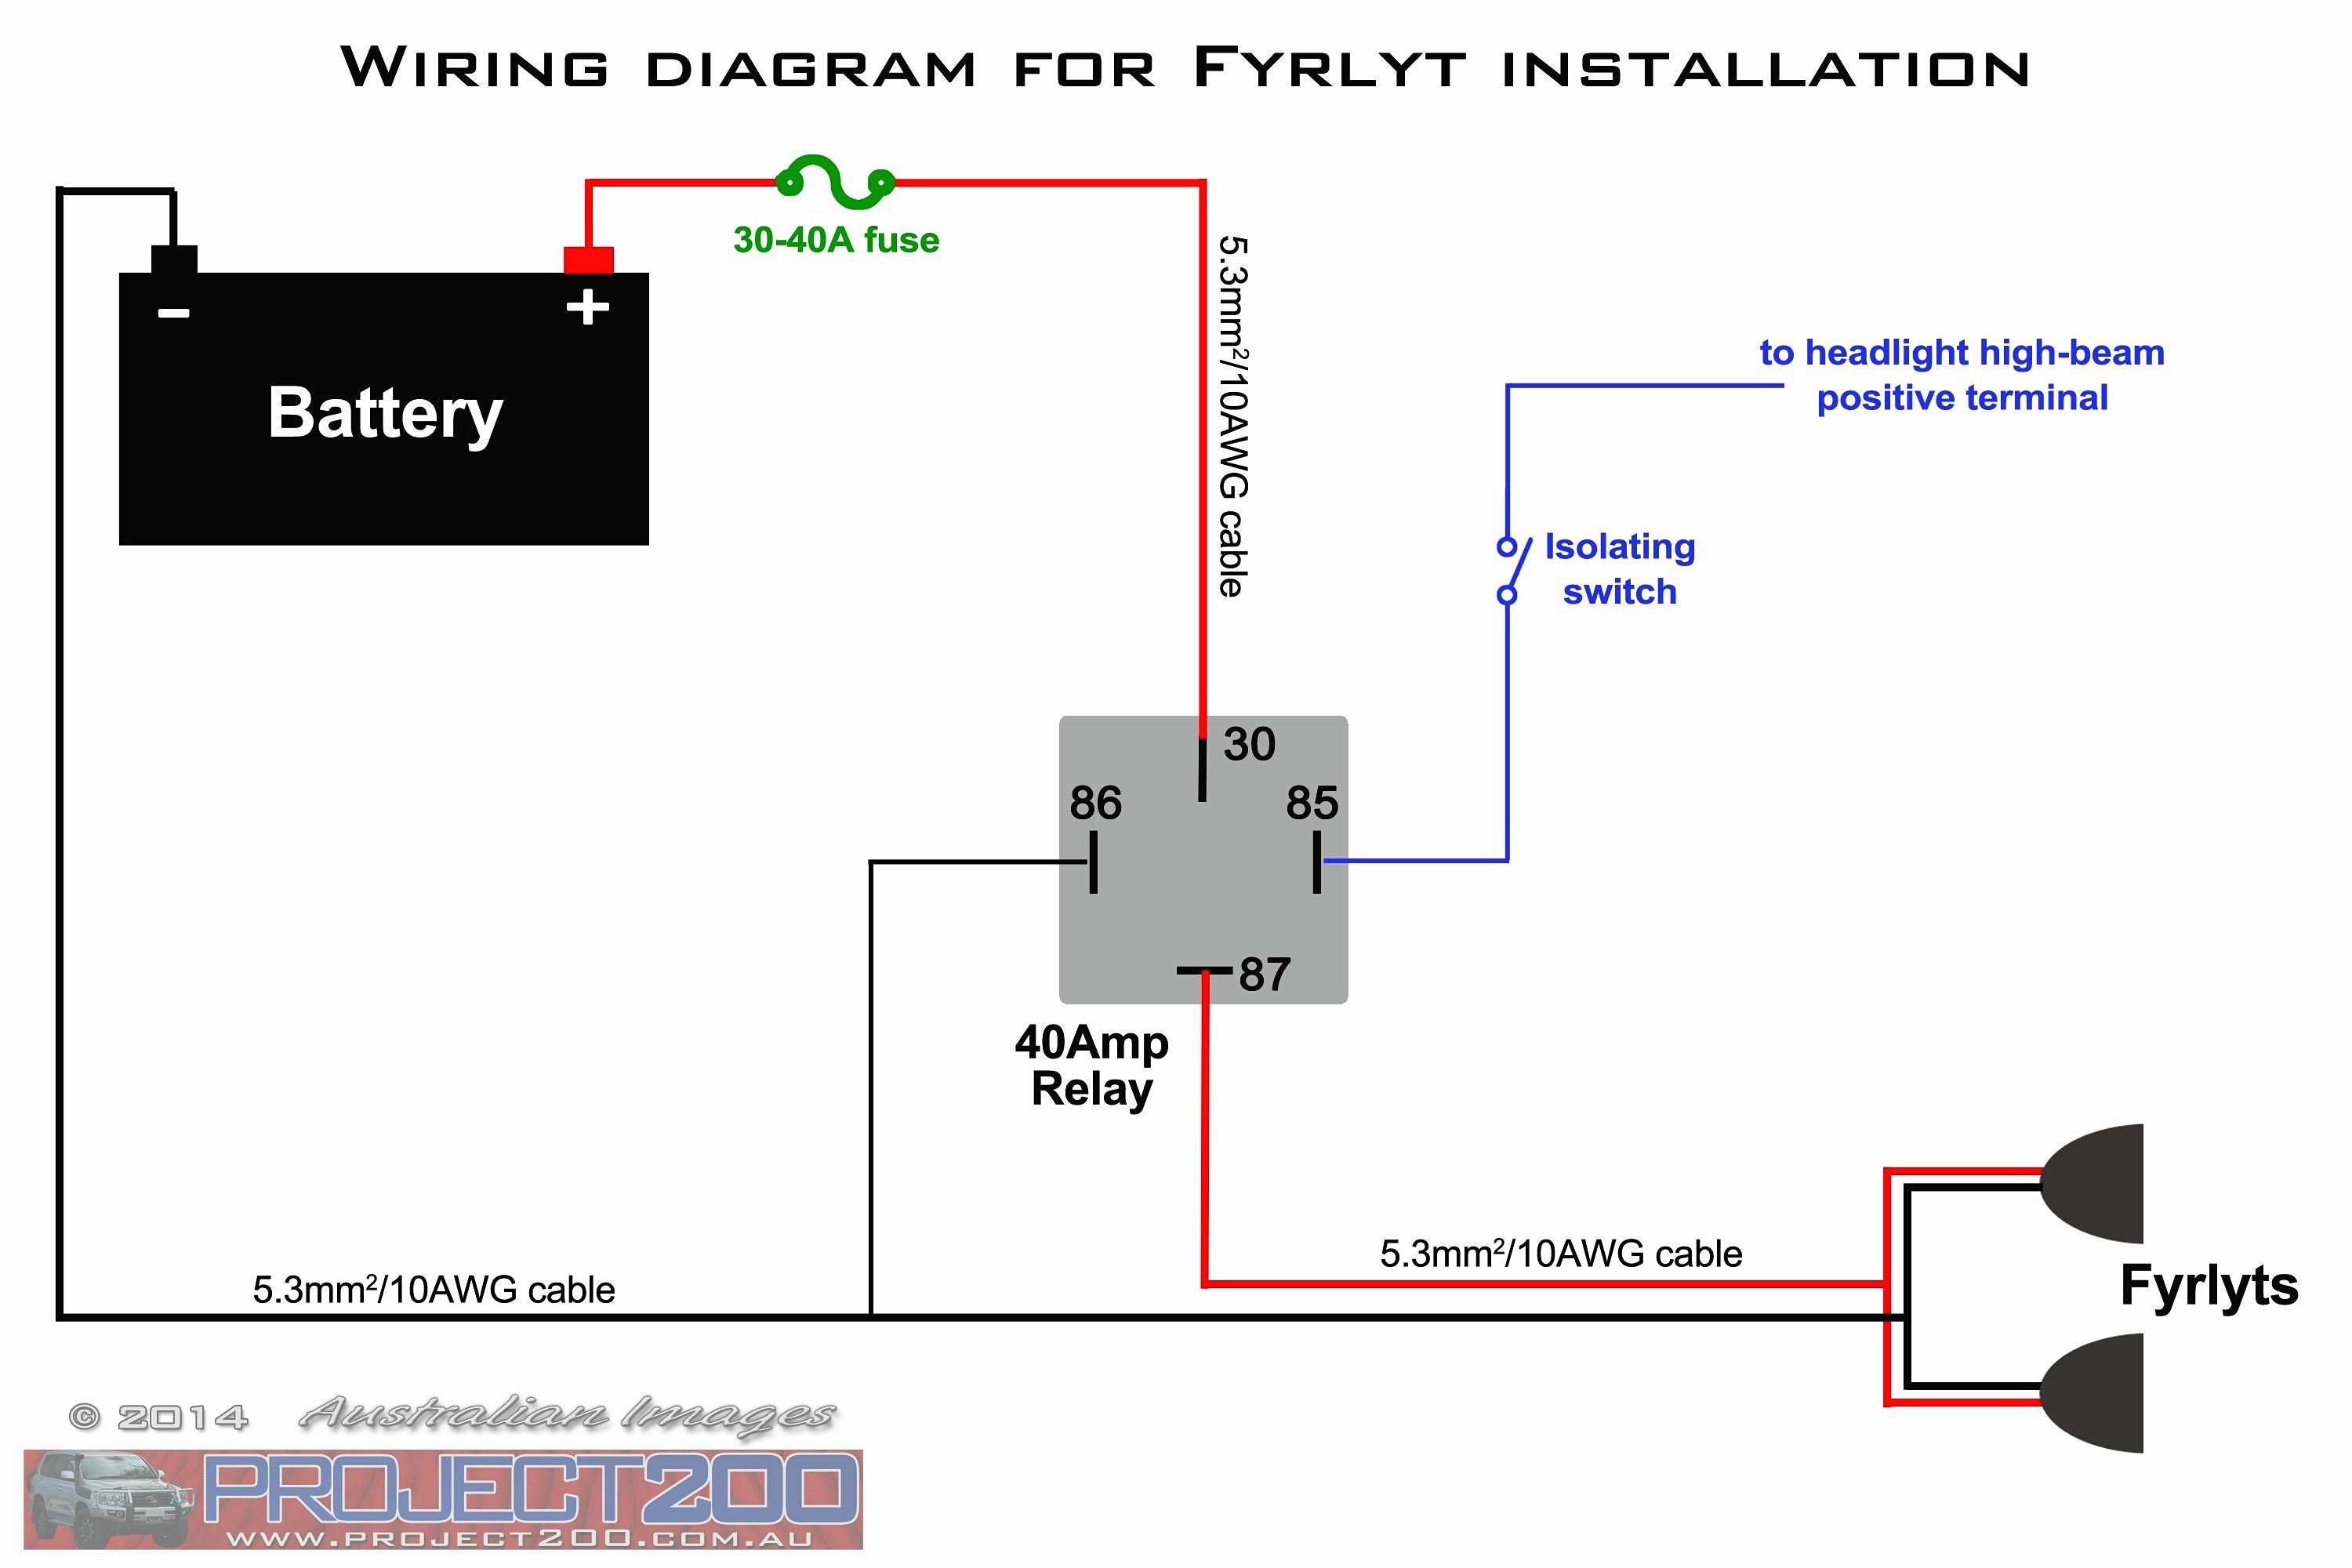 Wiring Diagram For Hid Headlights | Wiring Library - Hid Wiring Diagram With Relay